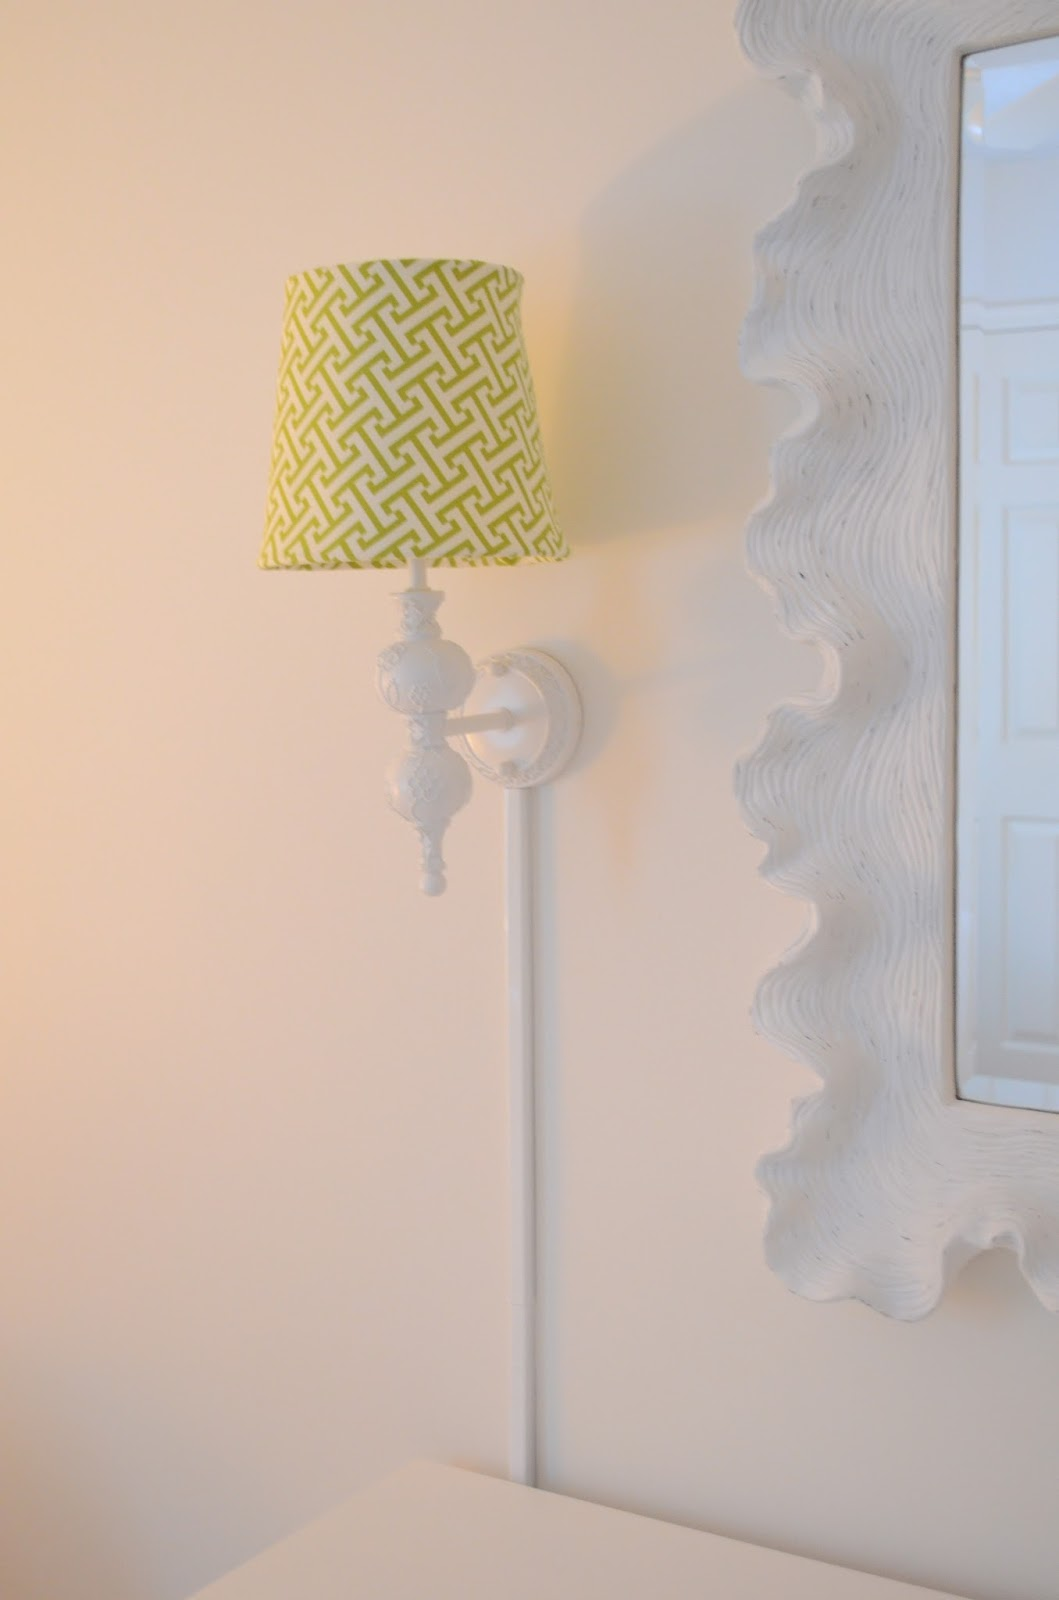 The Houston House: Installed Sconces & Cord Covers